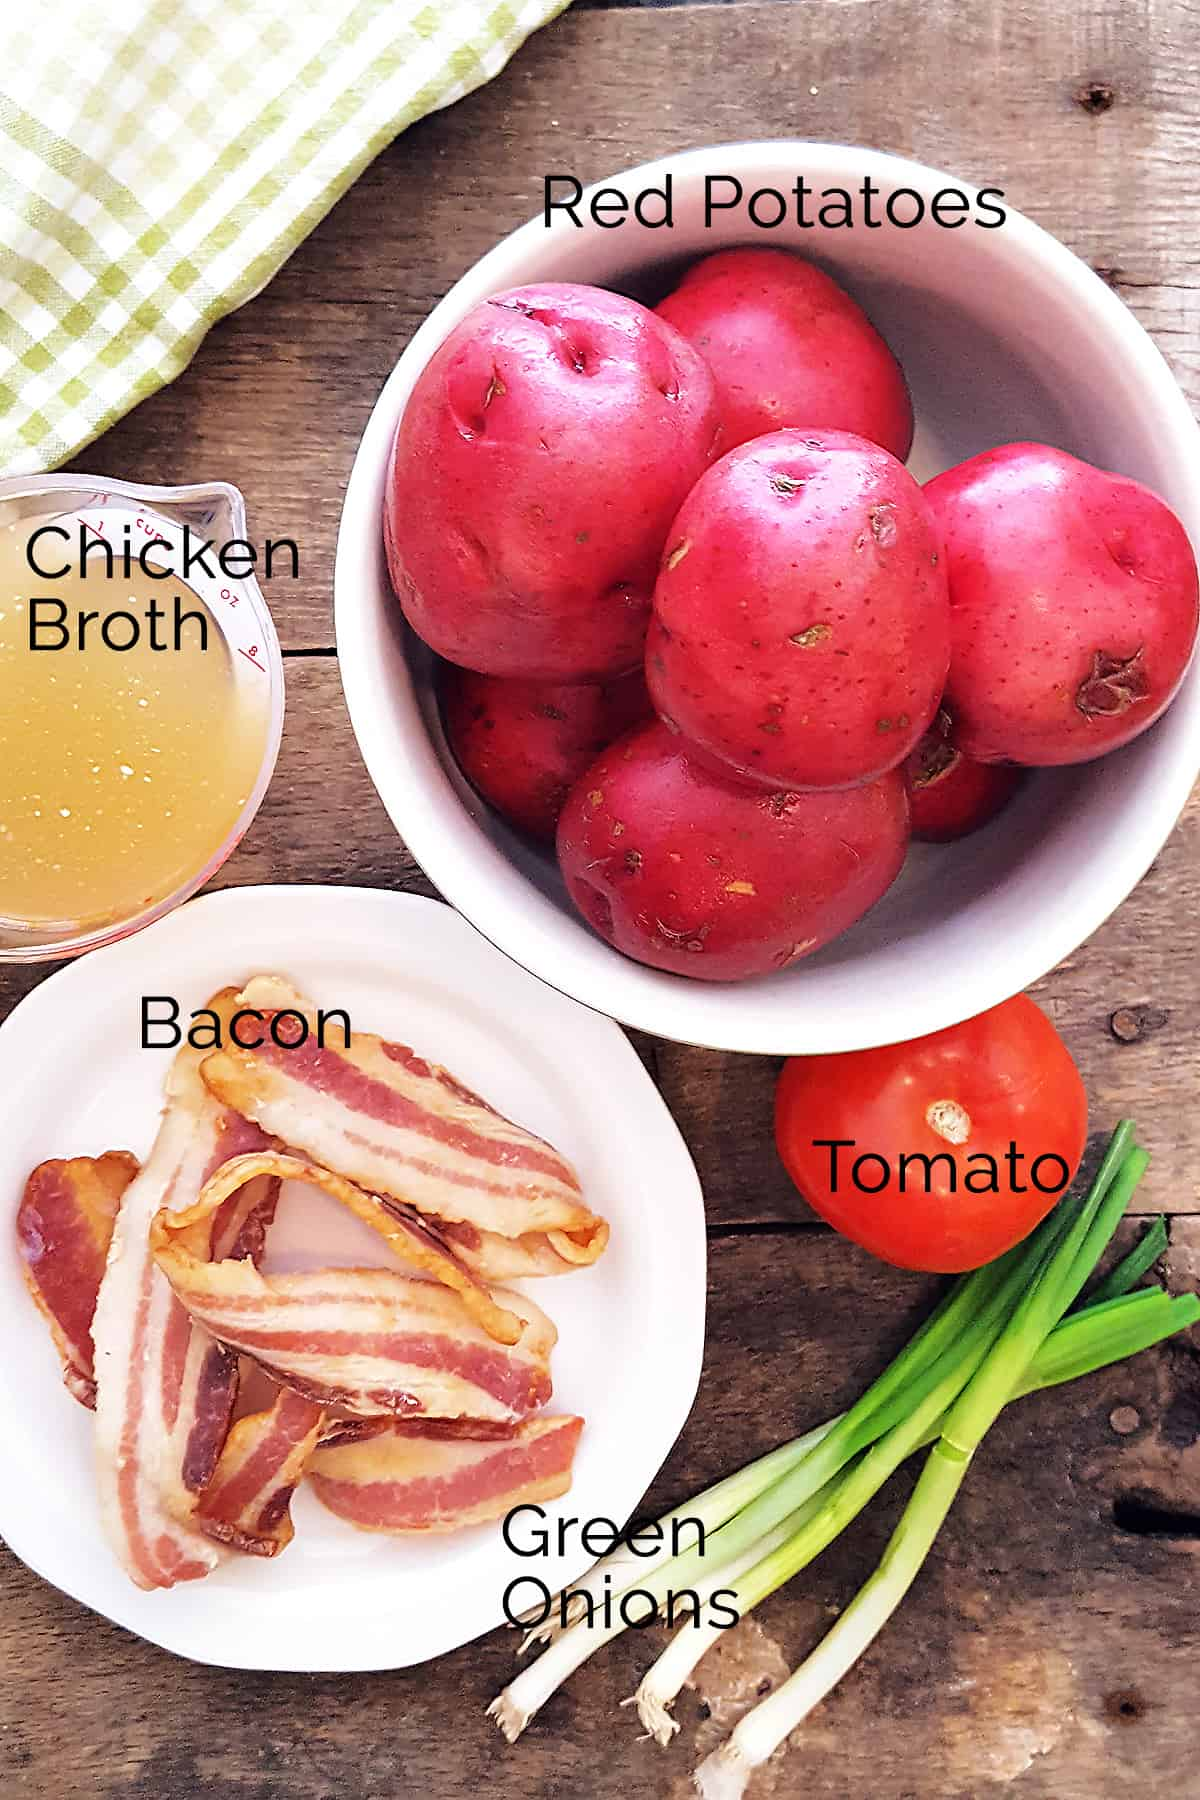 Ingredients needed for the recipe: chicken broth, red potatoes, tomato, green onions, bacon